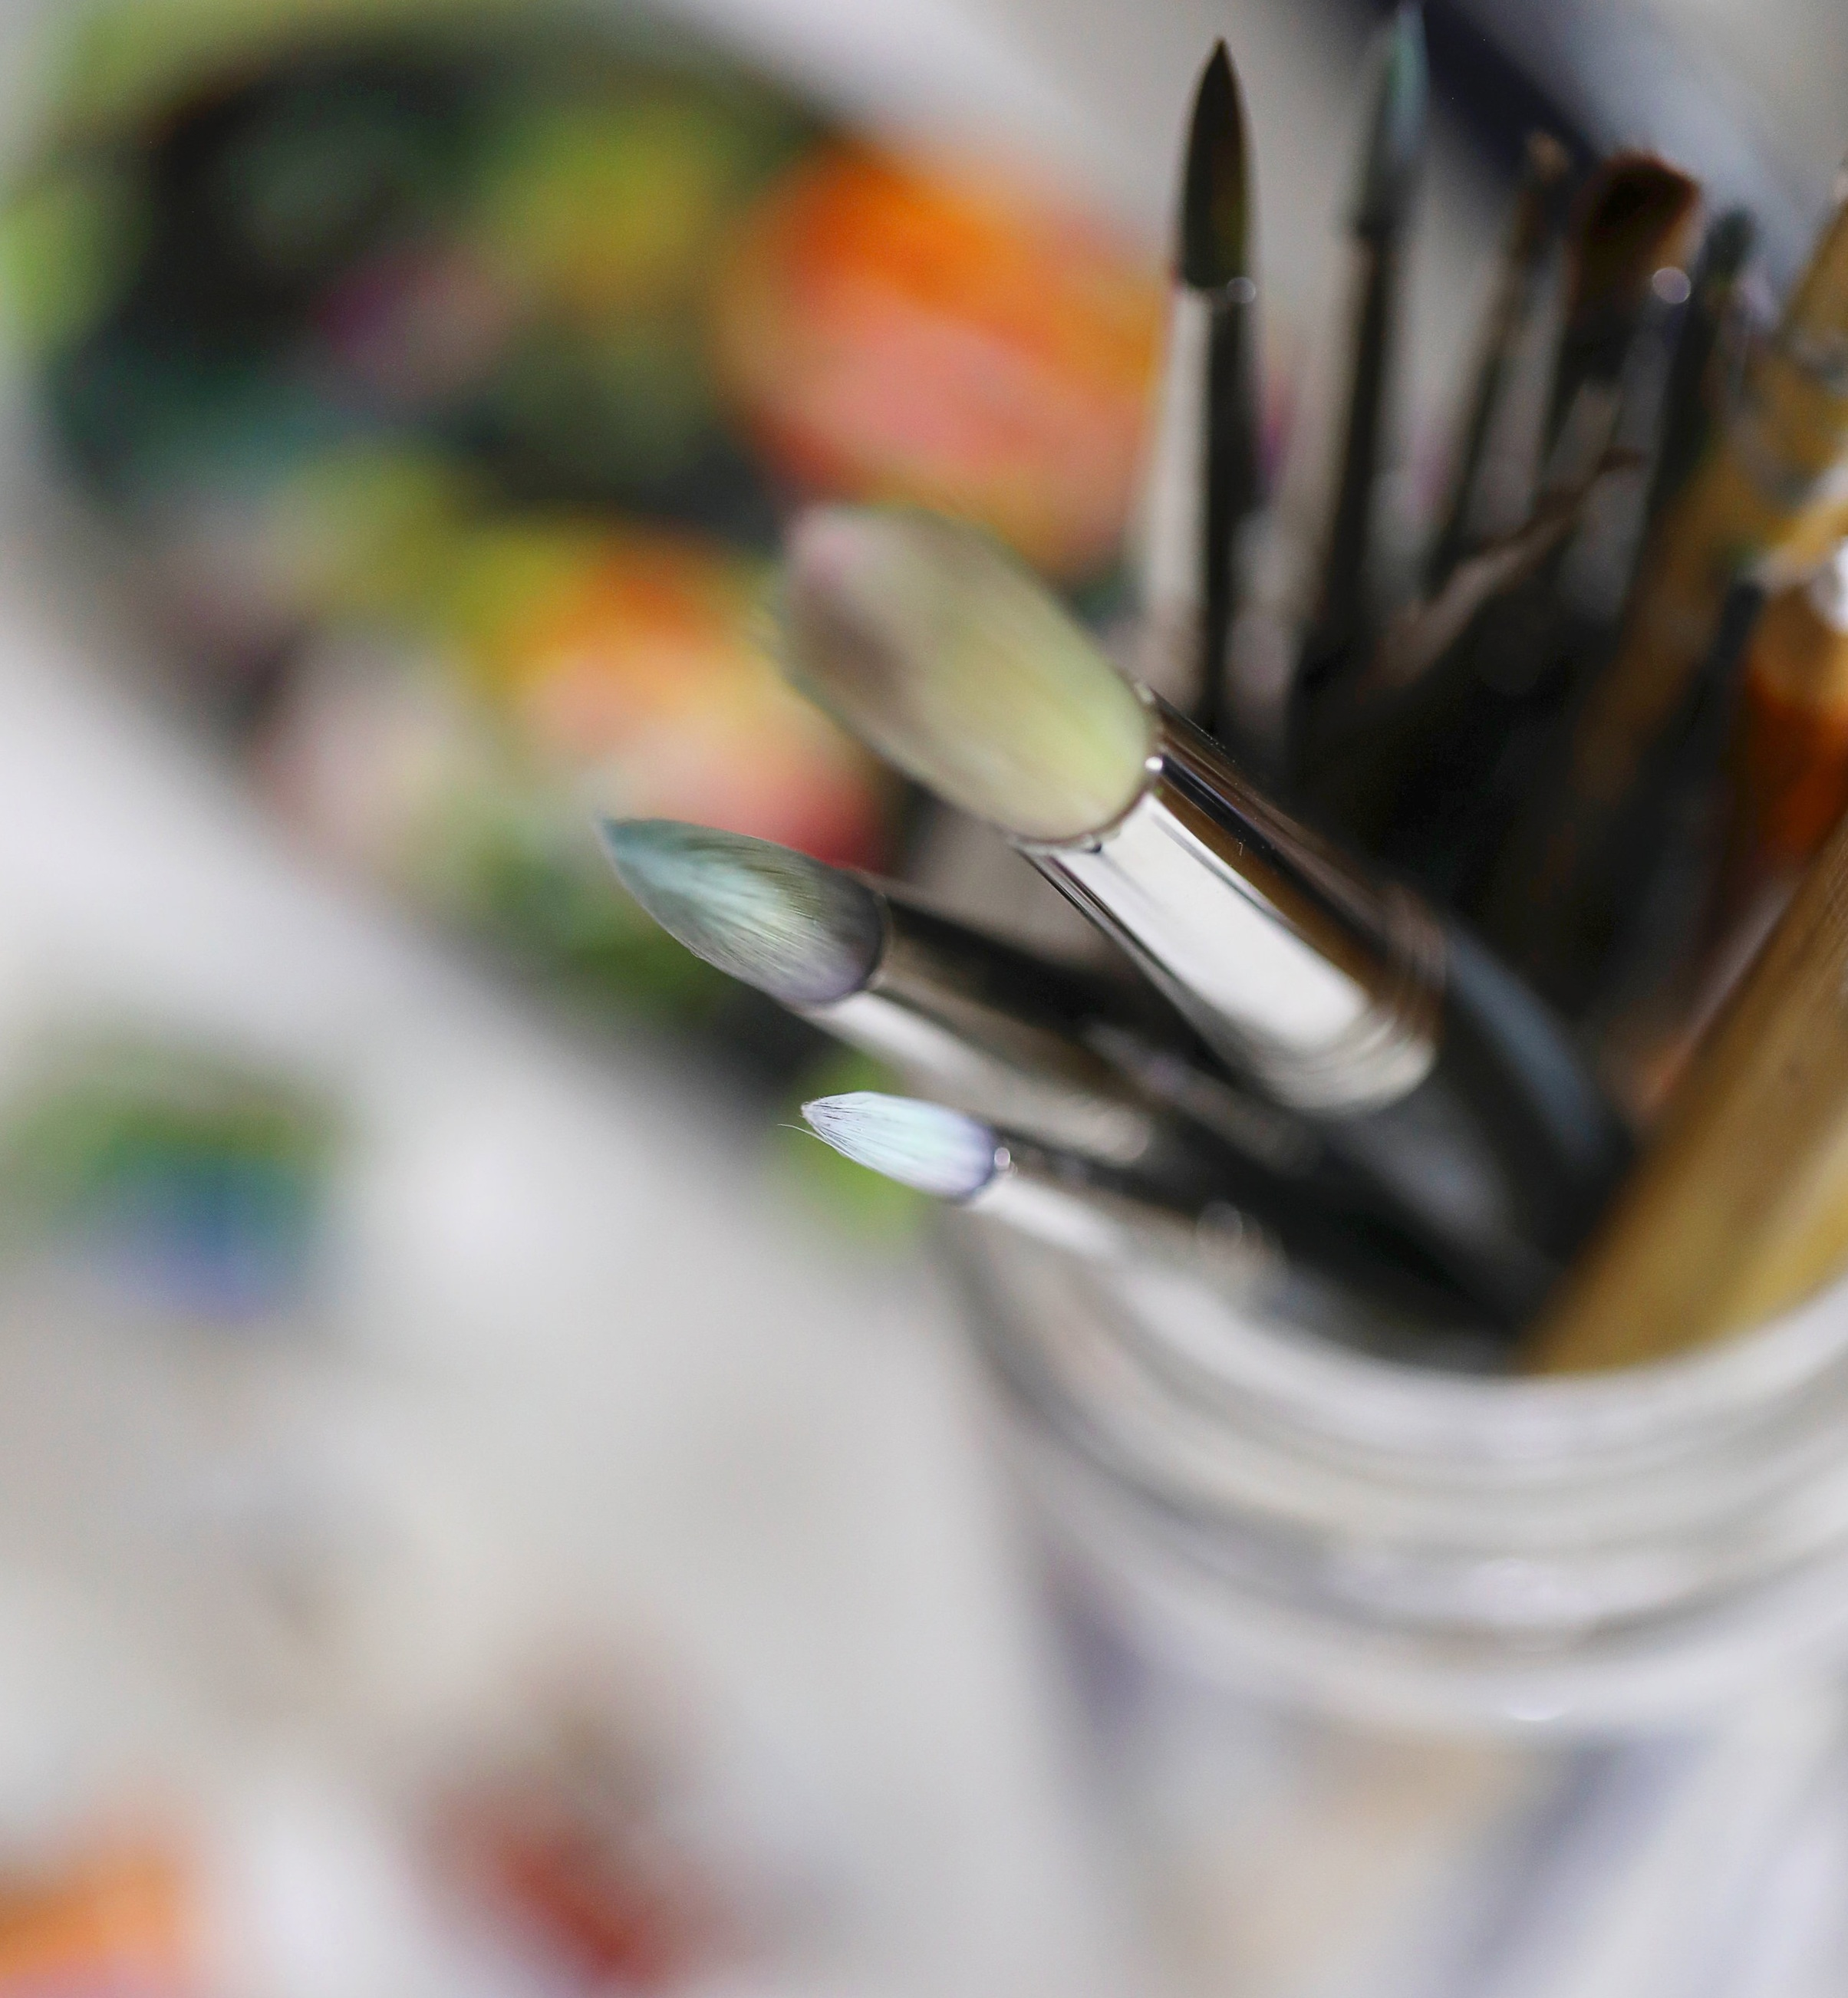 Look for a tapered brush tip so you can achieve thin strokes as well as thick strokes in your lettering.